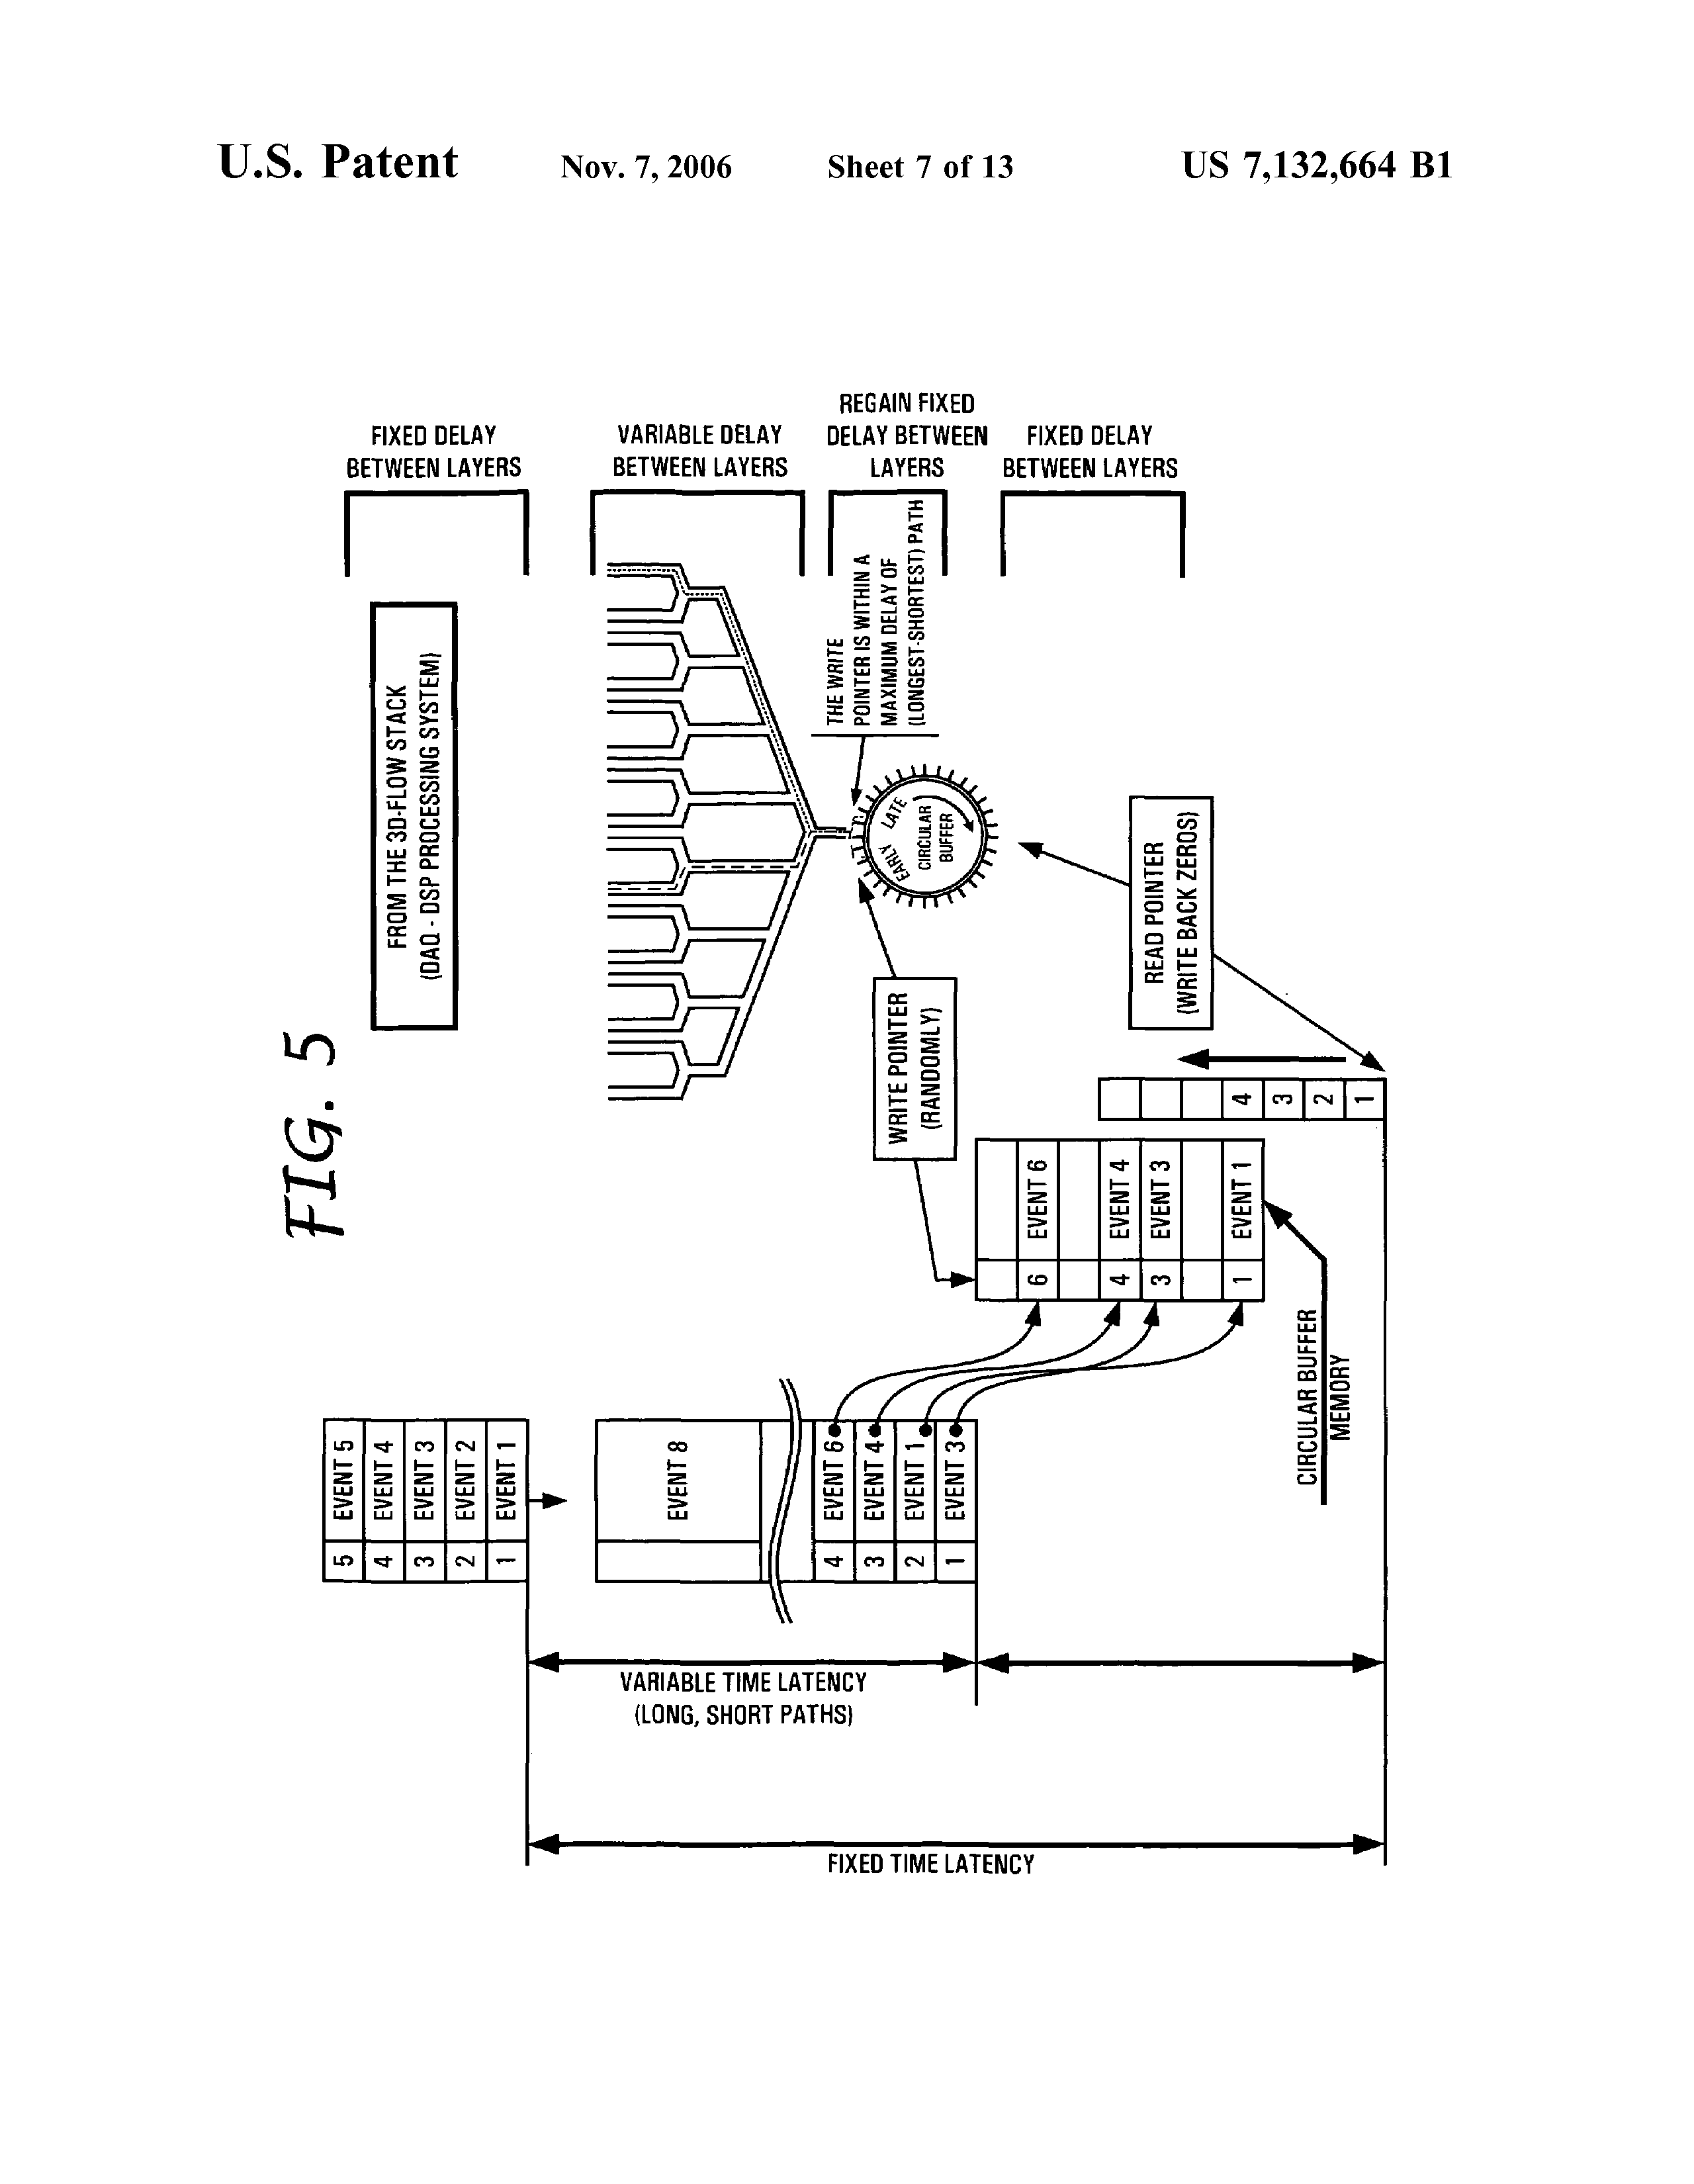 US 7132664 B1 - Method And Apparatus For Improving Pet